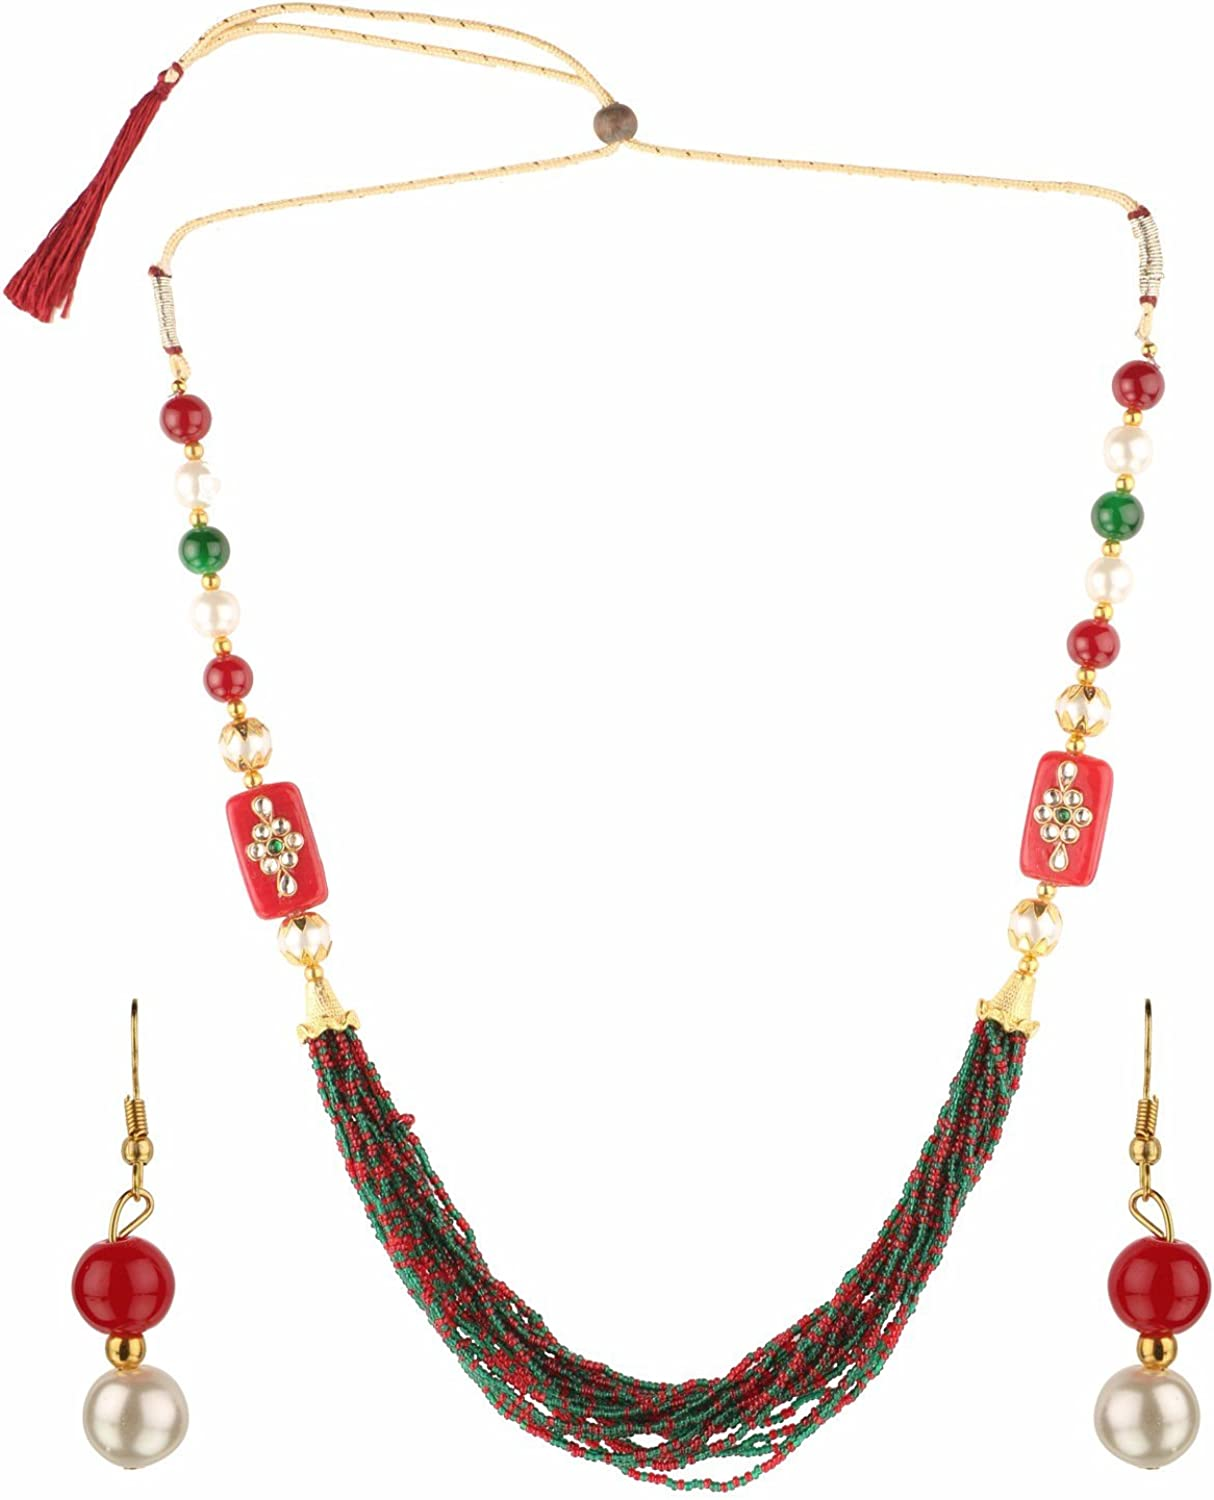 Ethnadore Indian Gold Plated Faux Pearl Beads Strand Statement Neckalce Drop Earrings Set Costume Jewelry